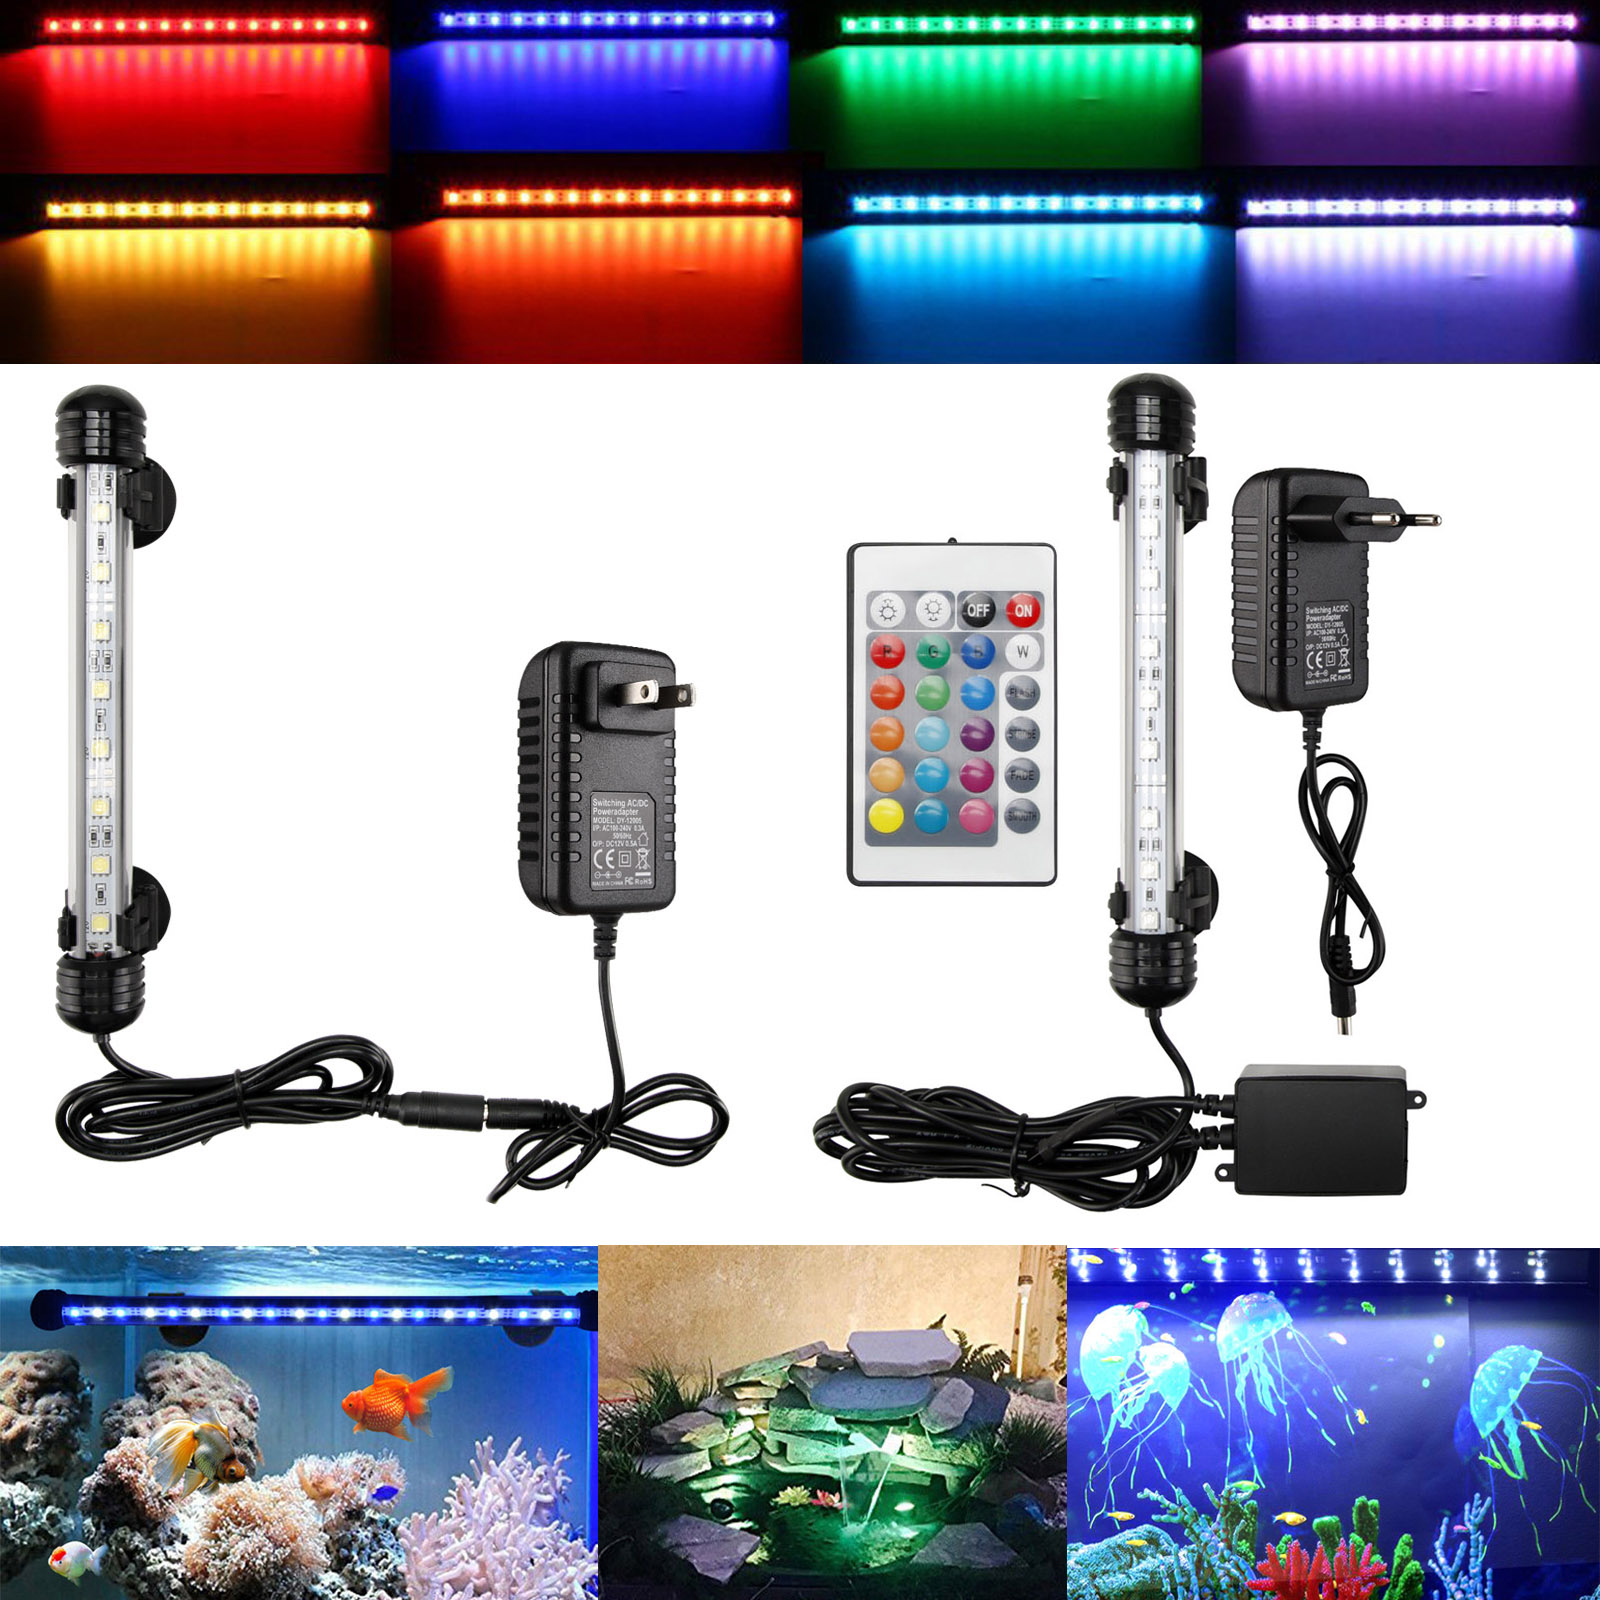 About Aquarium Rk Lamp Waterproof Submersible White Light Rgb Details Fish Strip Led Tank Blue Y6vb7gfy